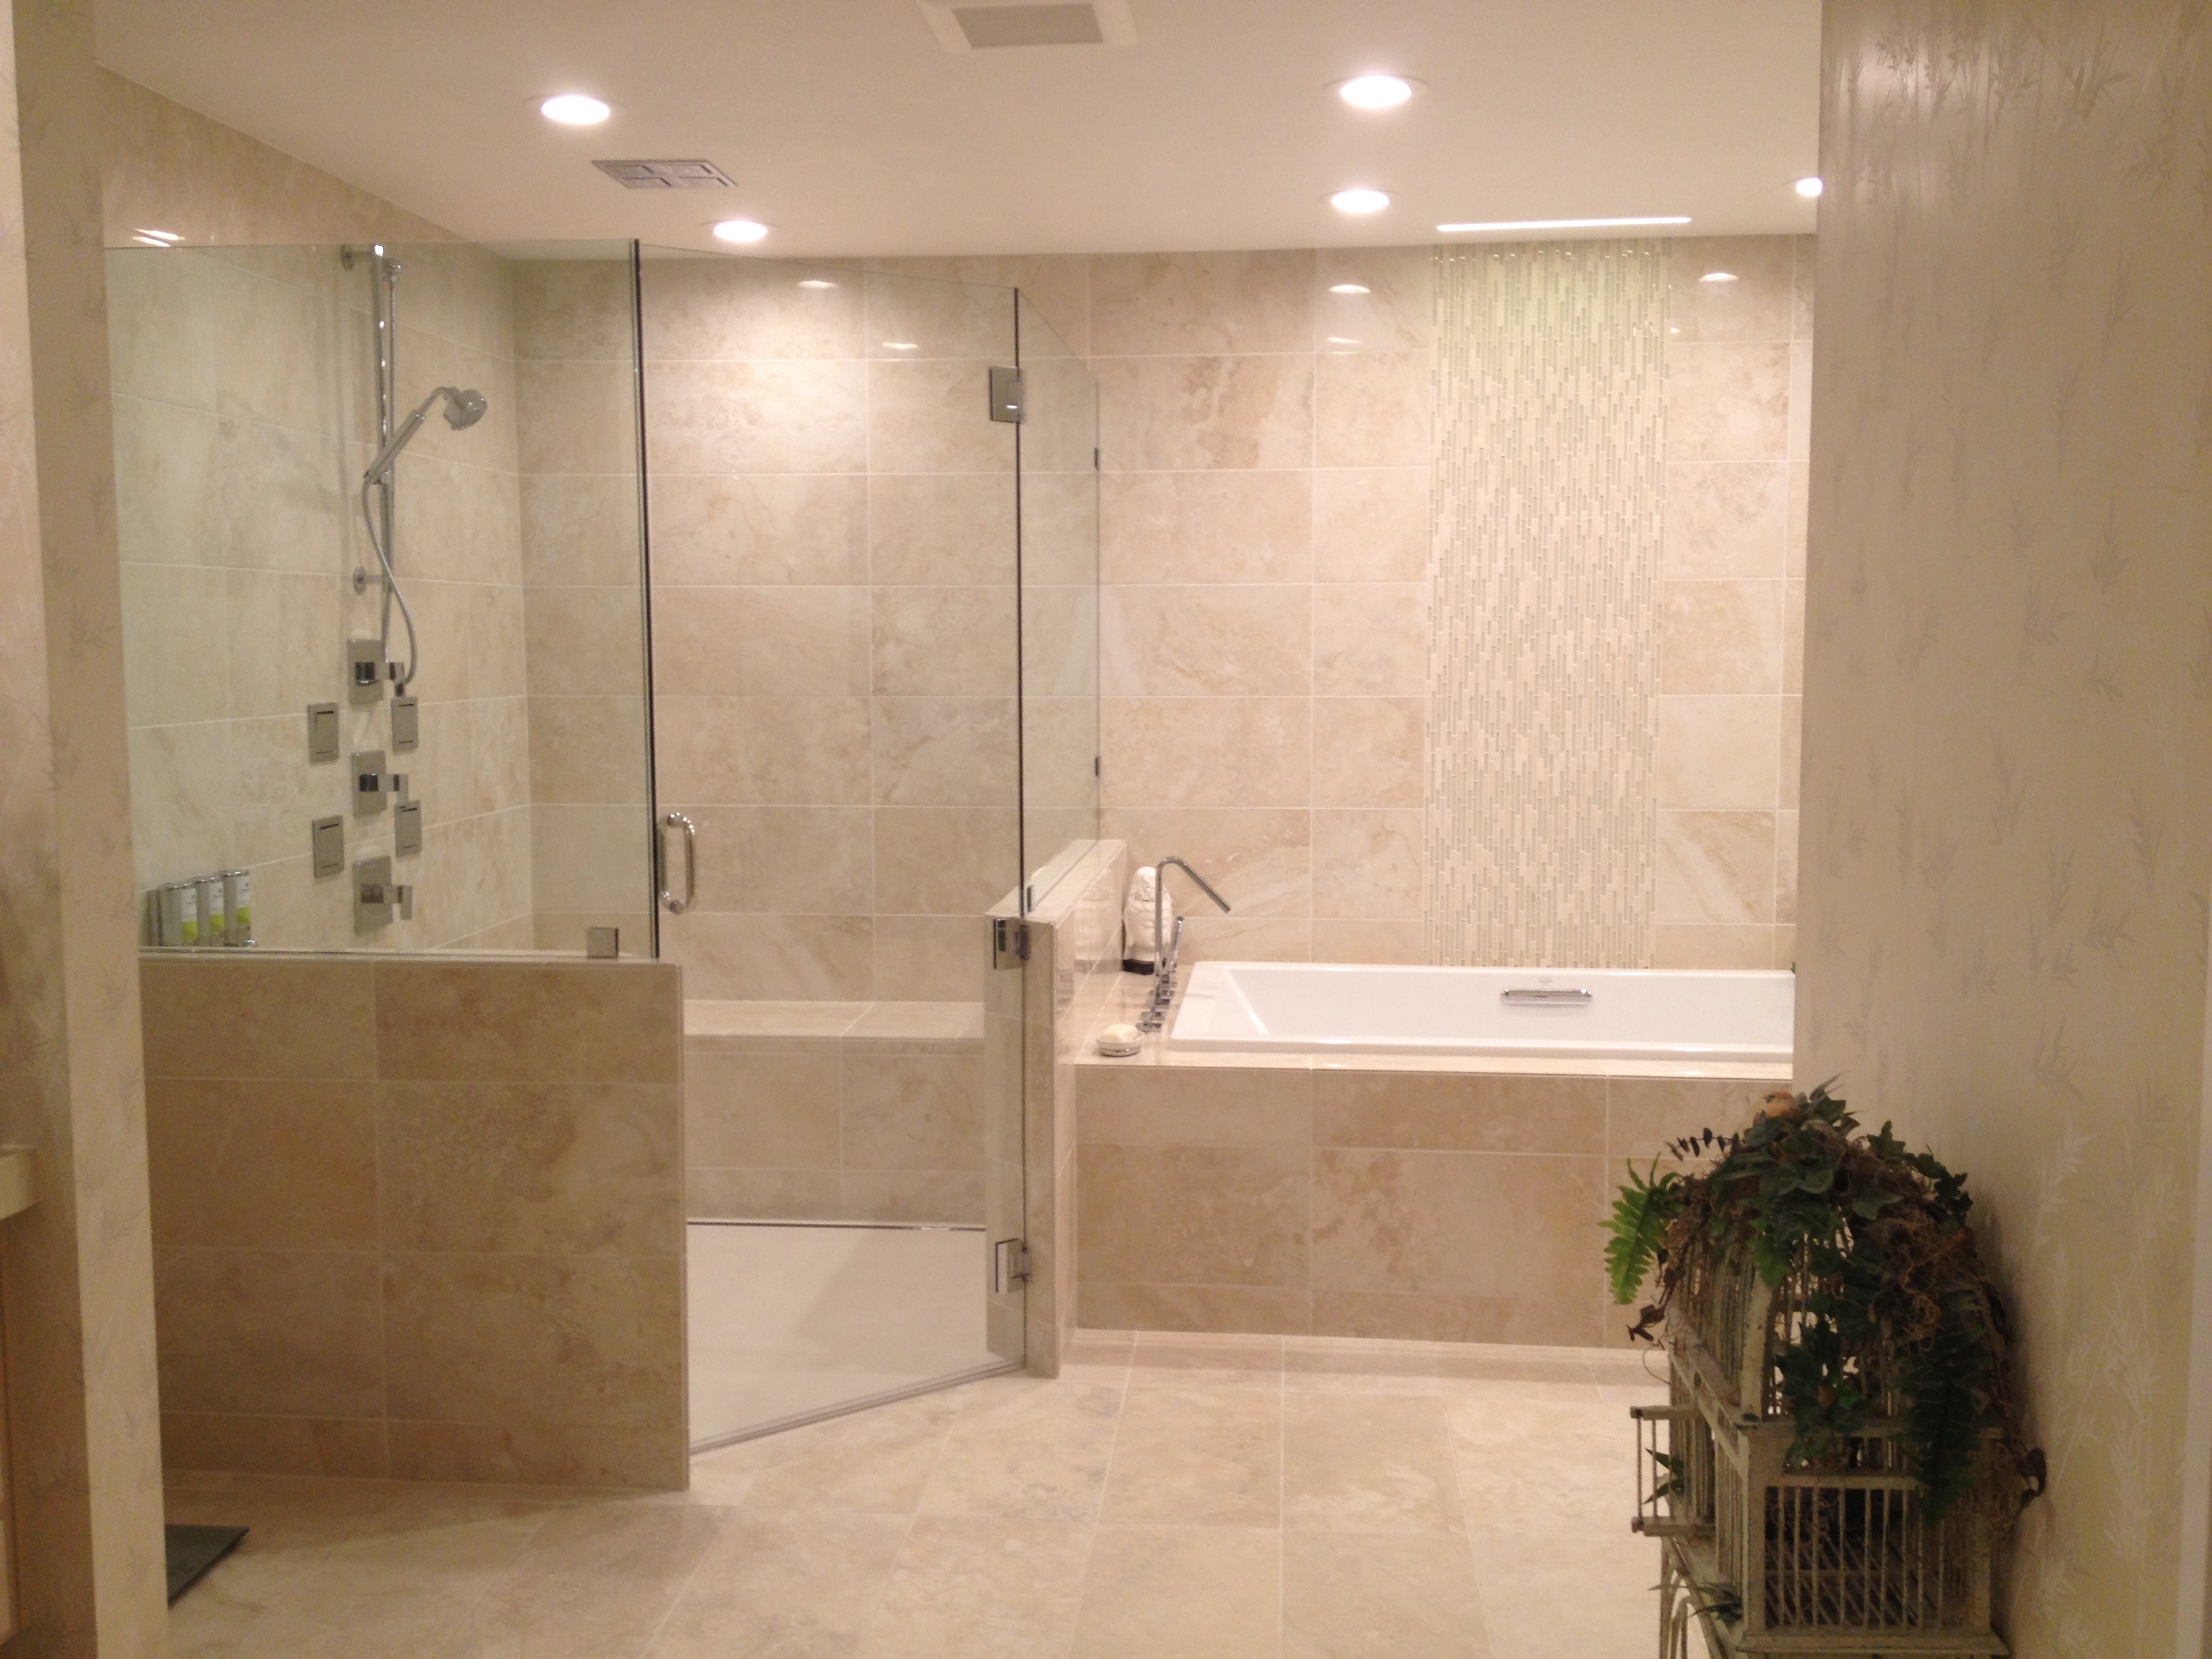 Tile shower with corian  shower pan